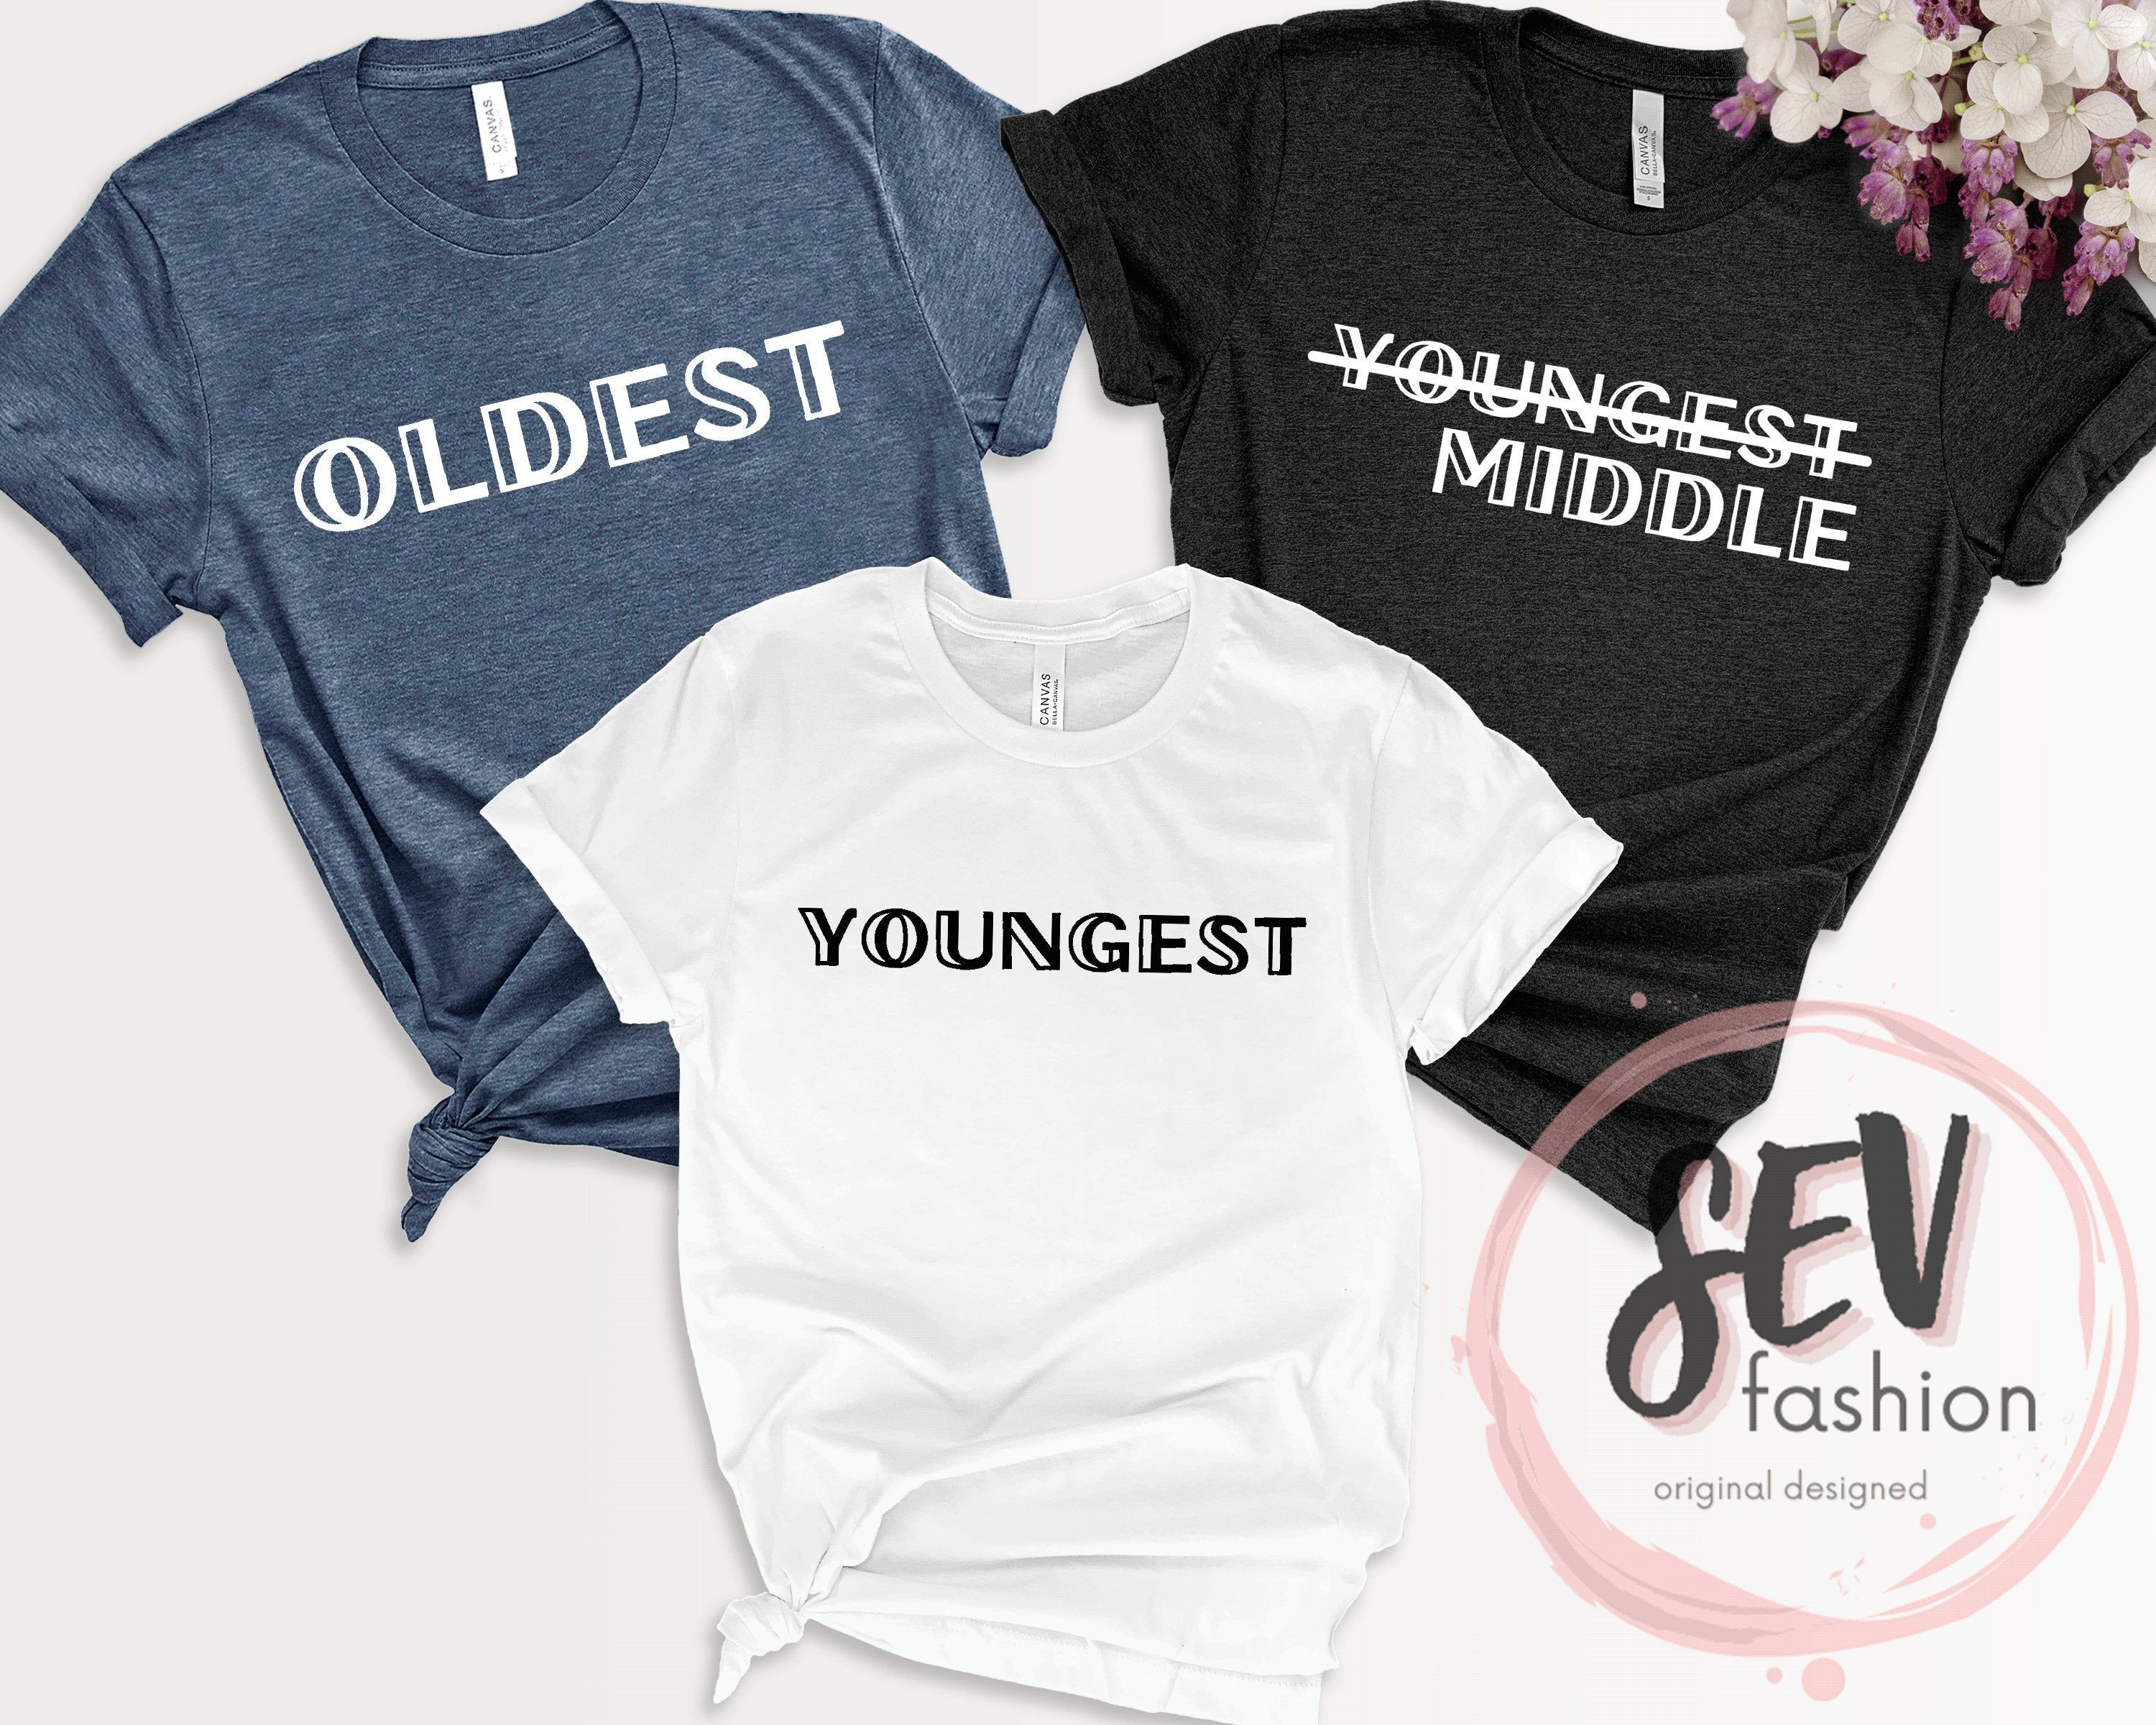 Oldest Middle And Youngest T-Shirt, Funny Kids Shirt, Matching Siblings Tee, Family Reunion Outfit, Children Family Shirt